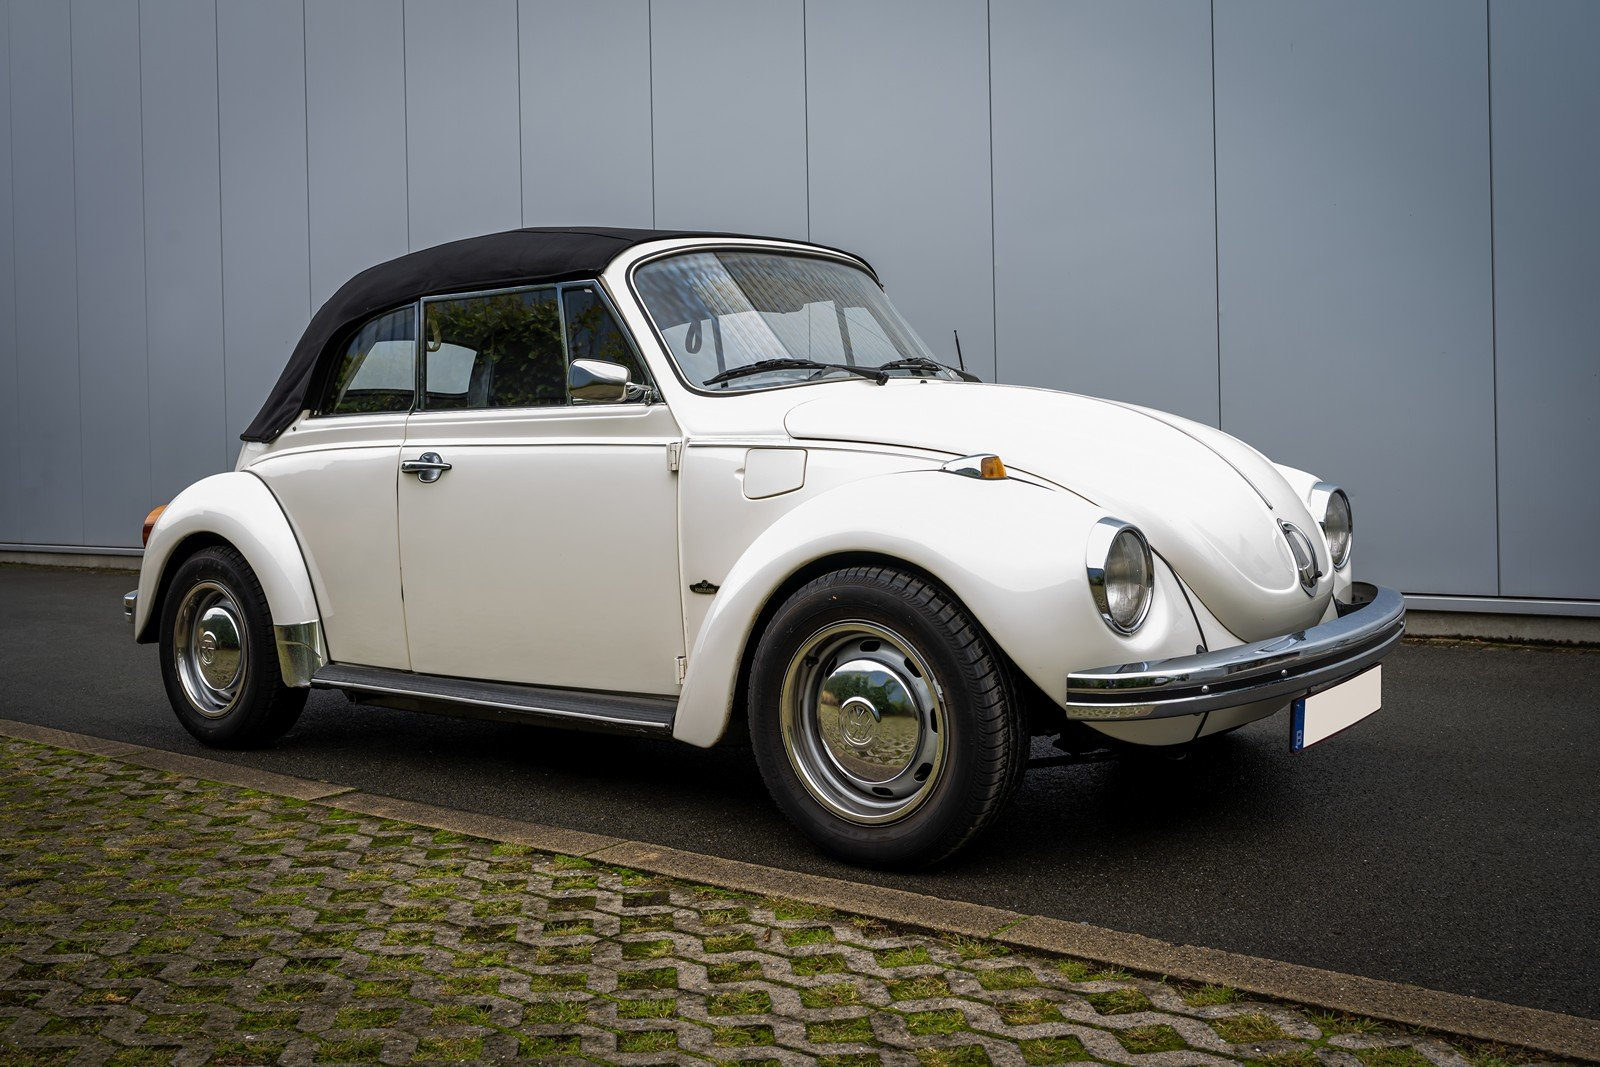 1973 Volkswagen Beetle Type 1303 Cabriolet For Sale (picture 2 of 39)